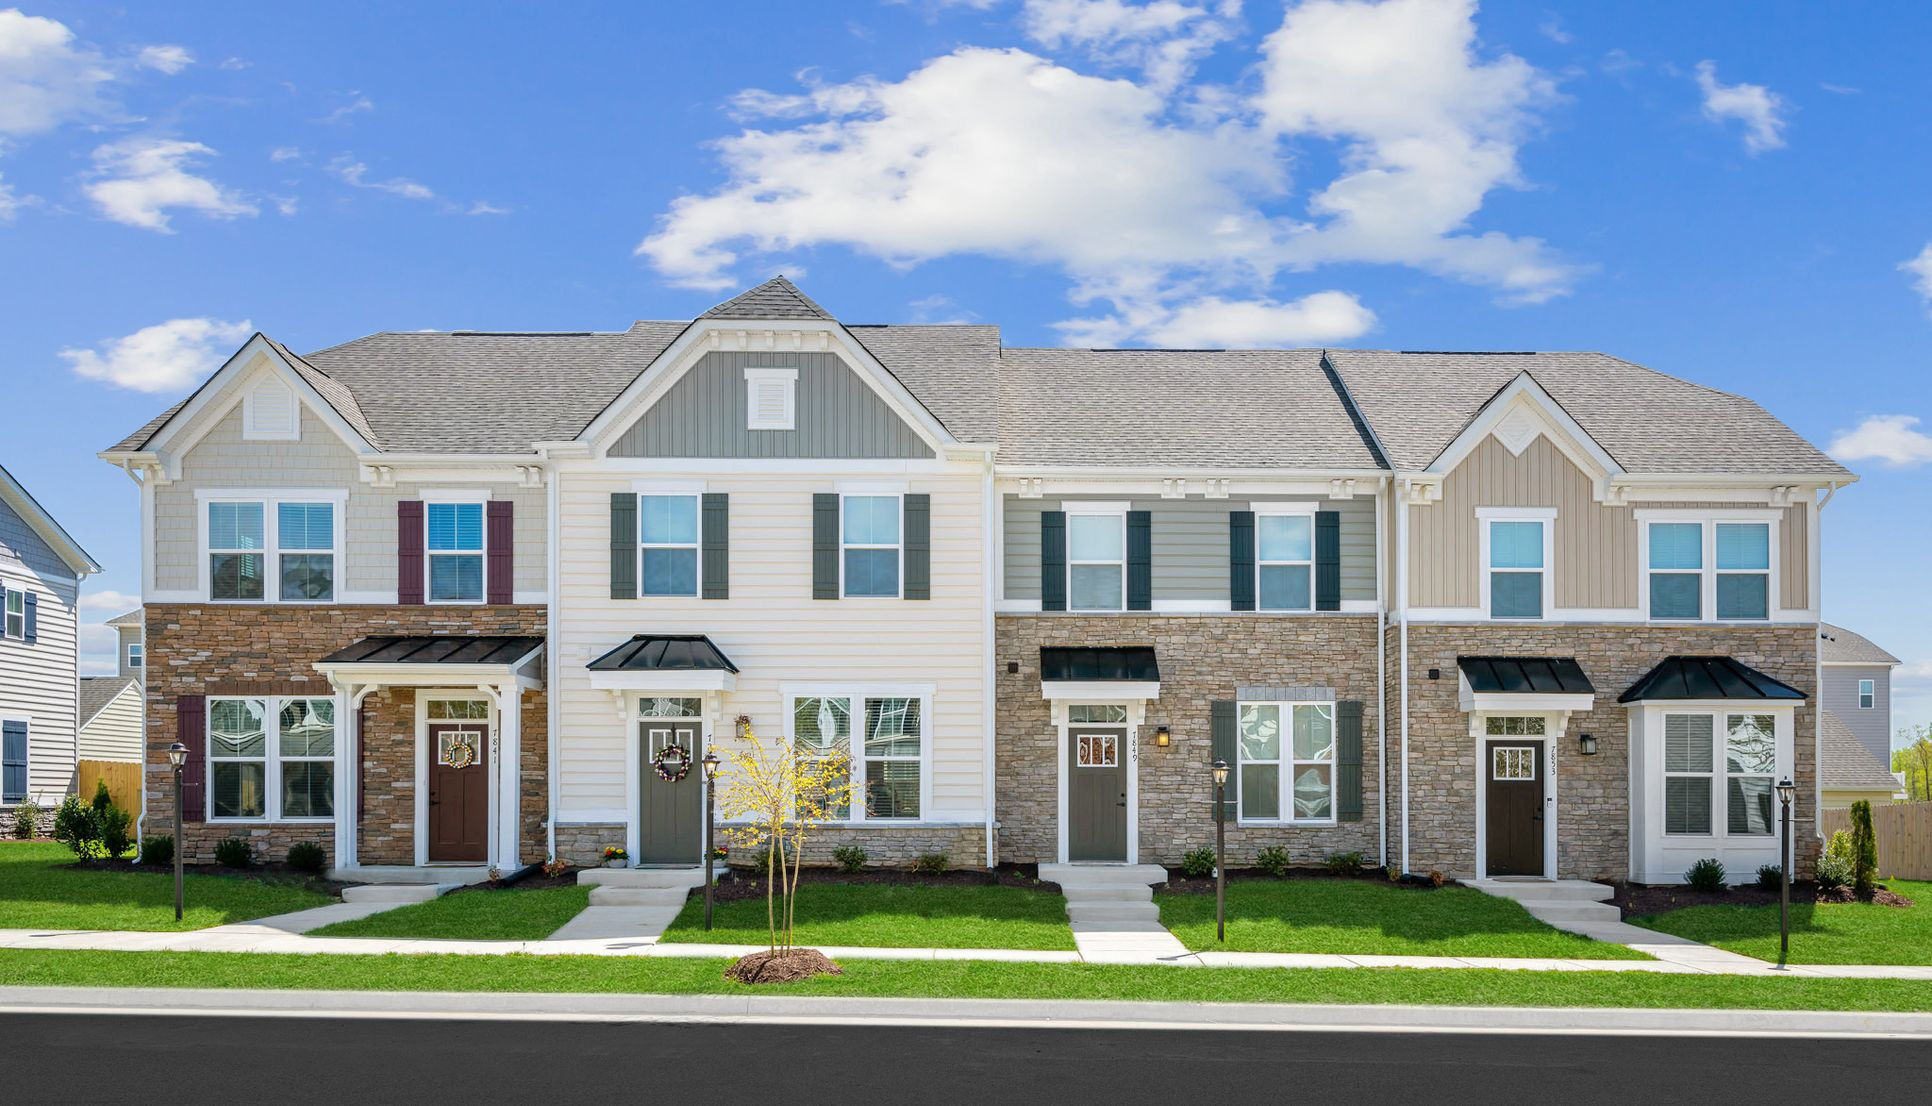 Make Homeownership your new reality!:Coming soon to the location you love in Eastern Henrico, new 3-bedroom townhomes with backyards, from the $200s. Spring Park is welcoming you home,click here to join the VIP List.